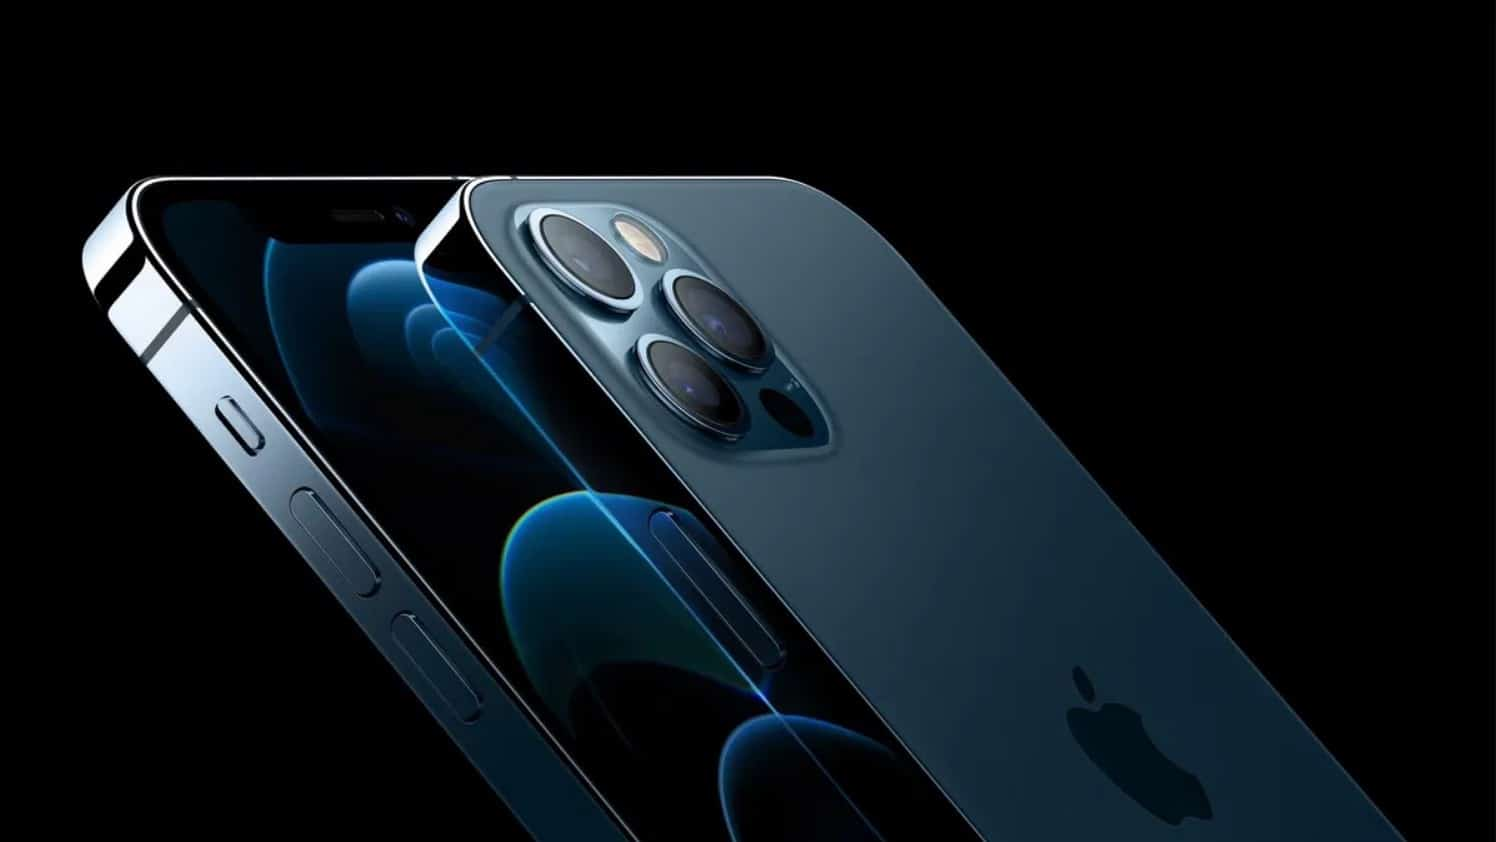 The iPhone 13 could arrive on the third week of September